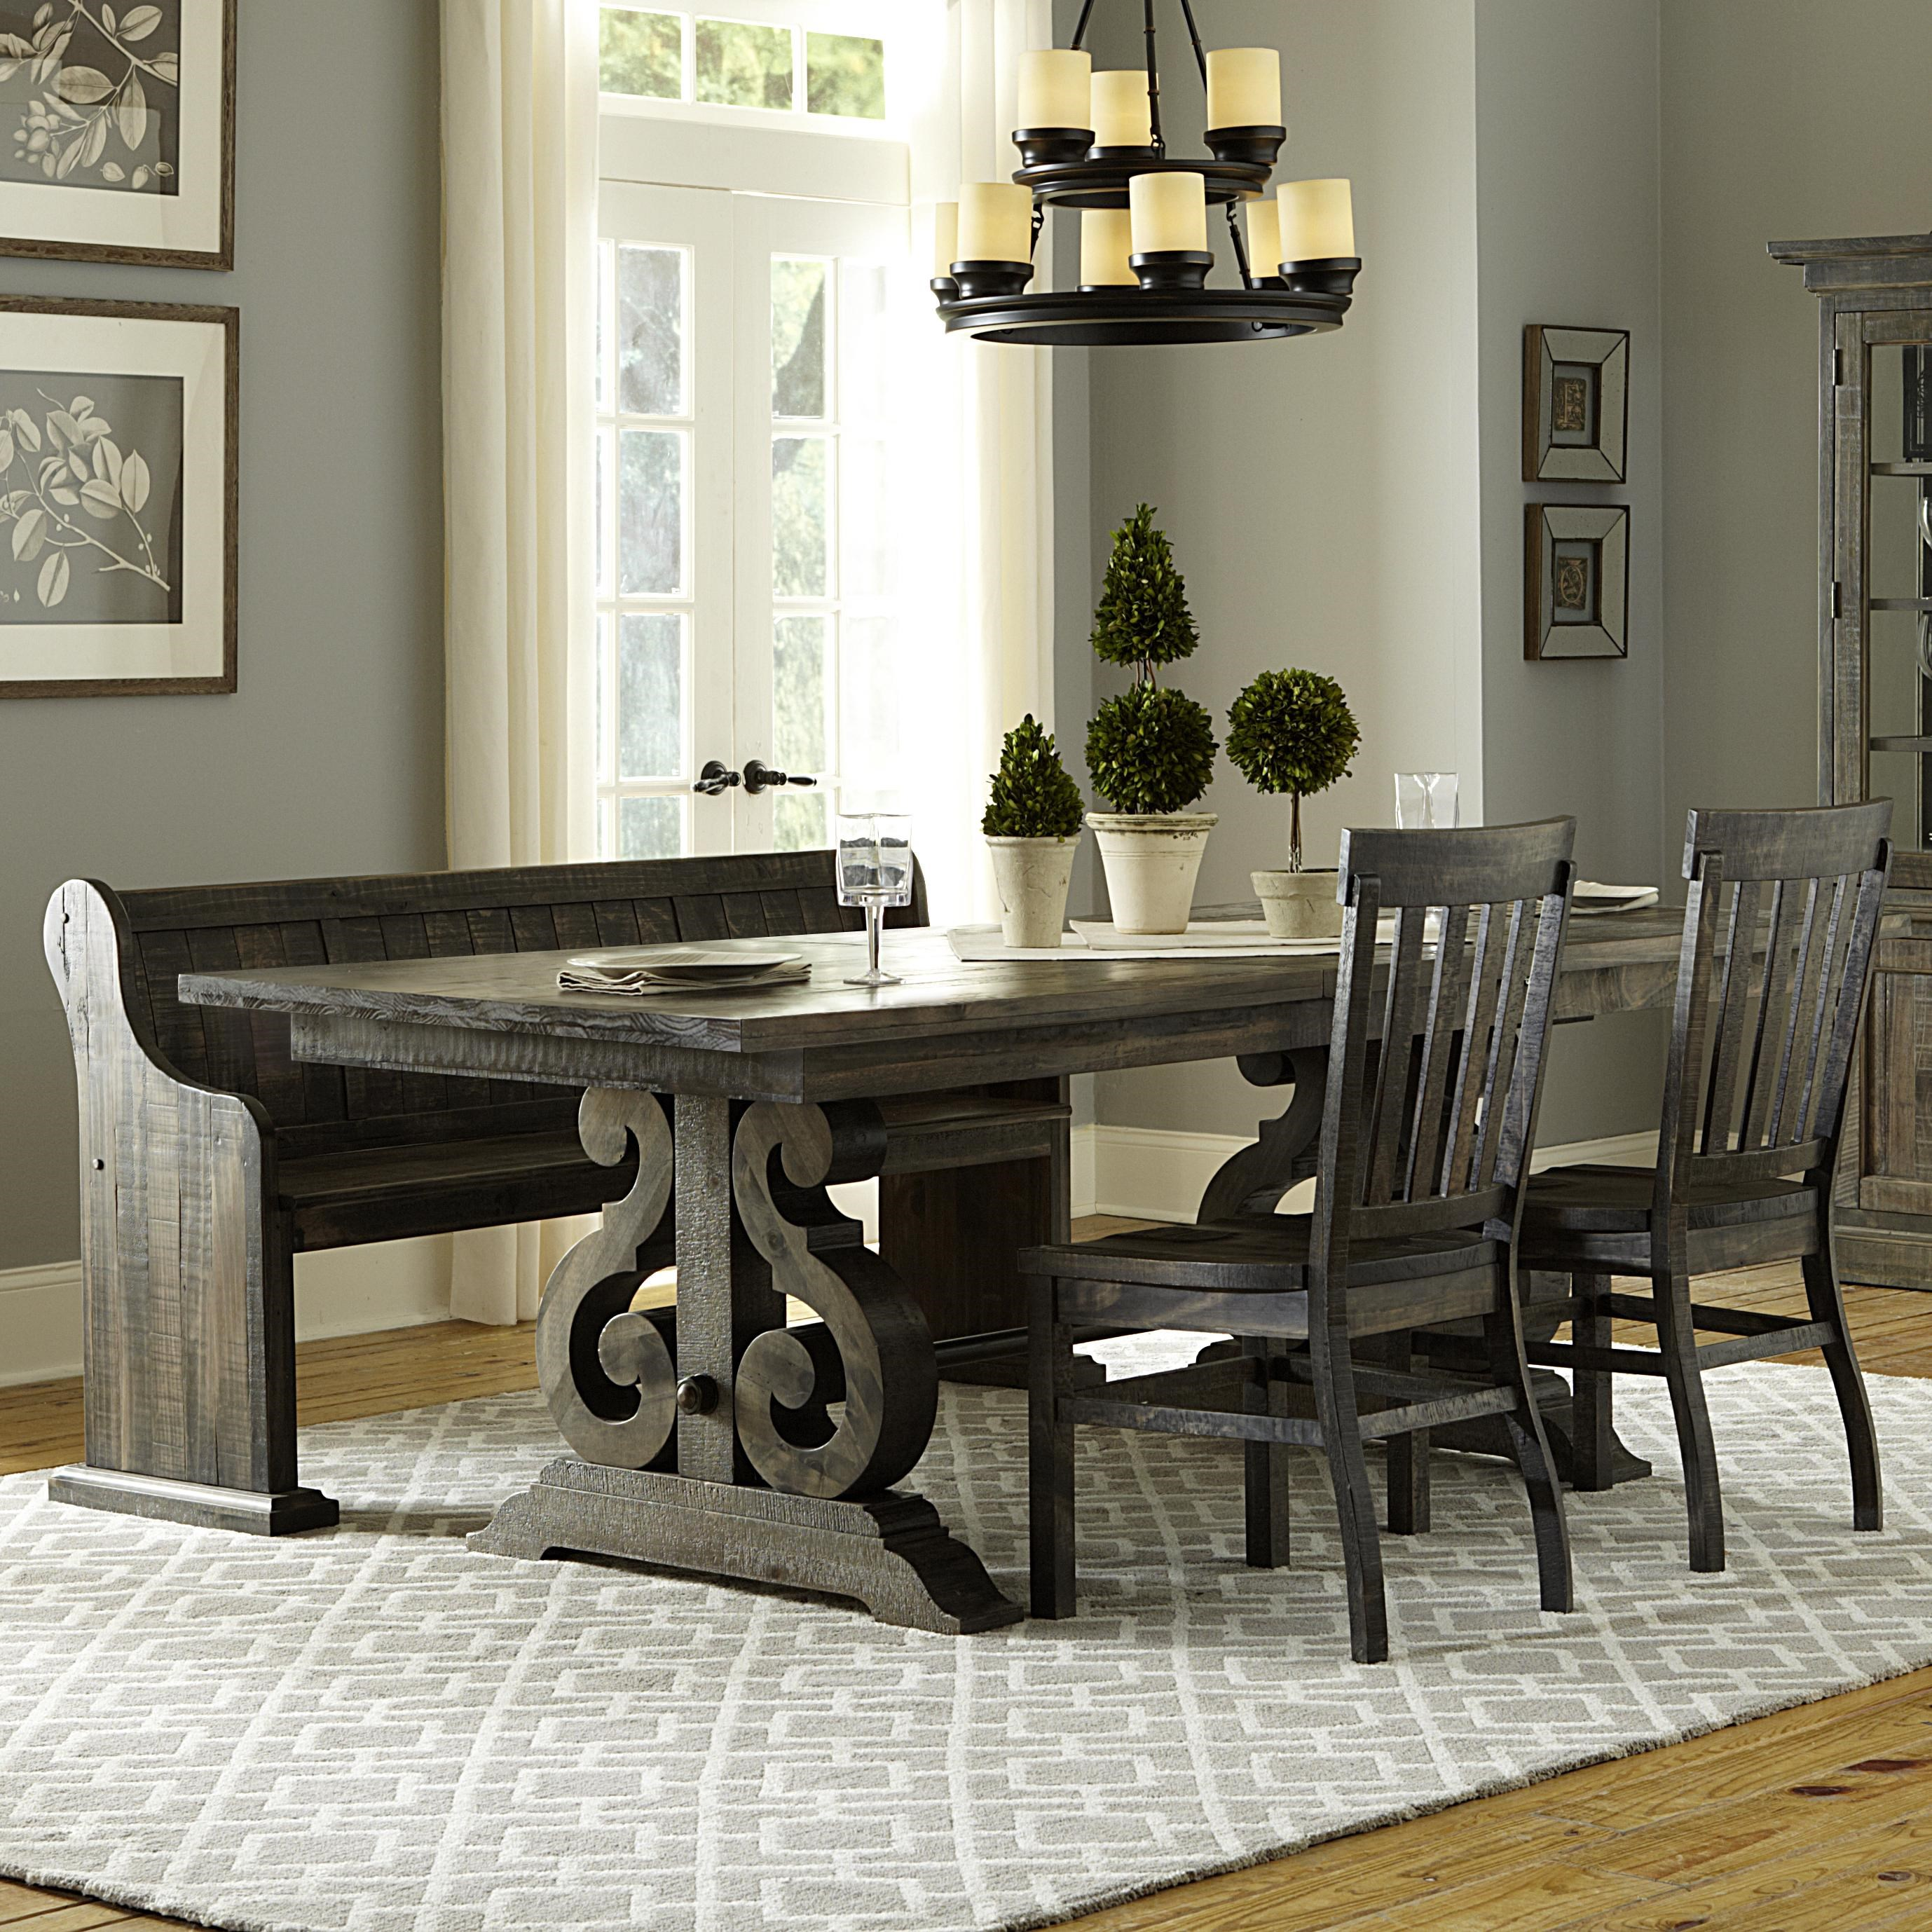 dining table with 2 chairs. magnussen home turnin table + 2 chairs bench dining with